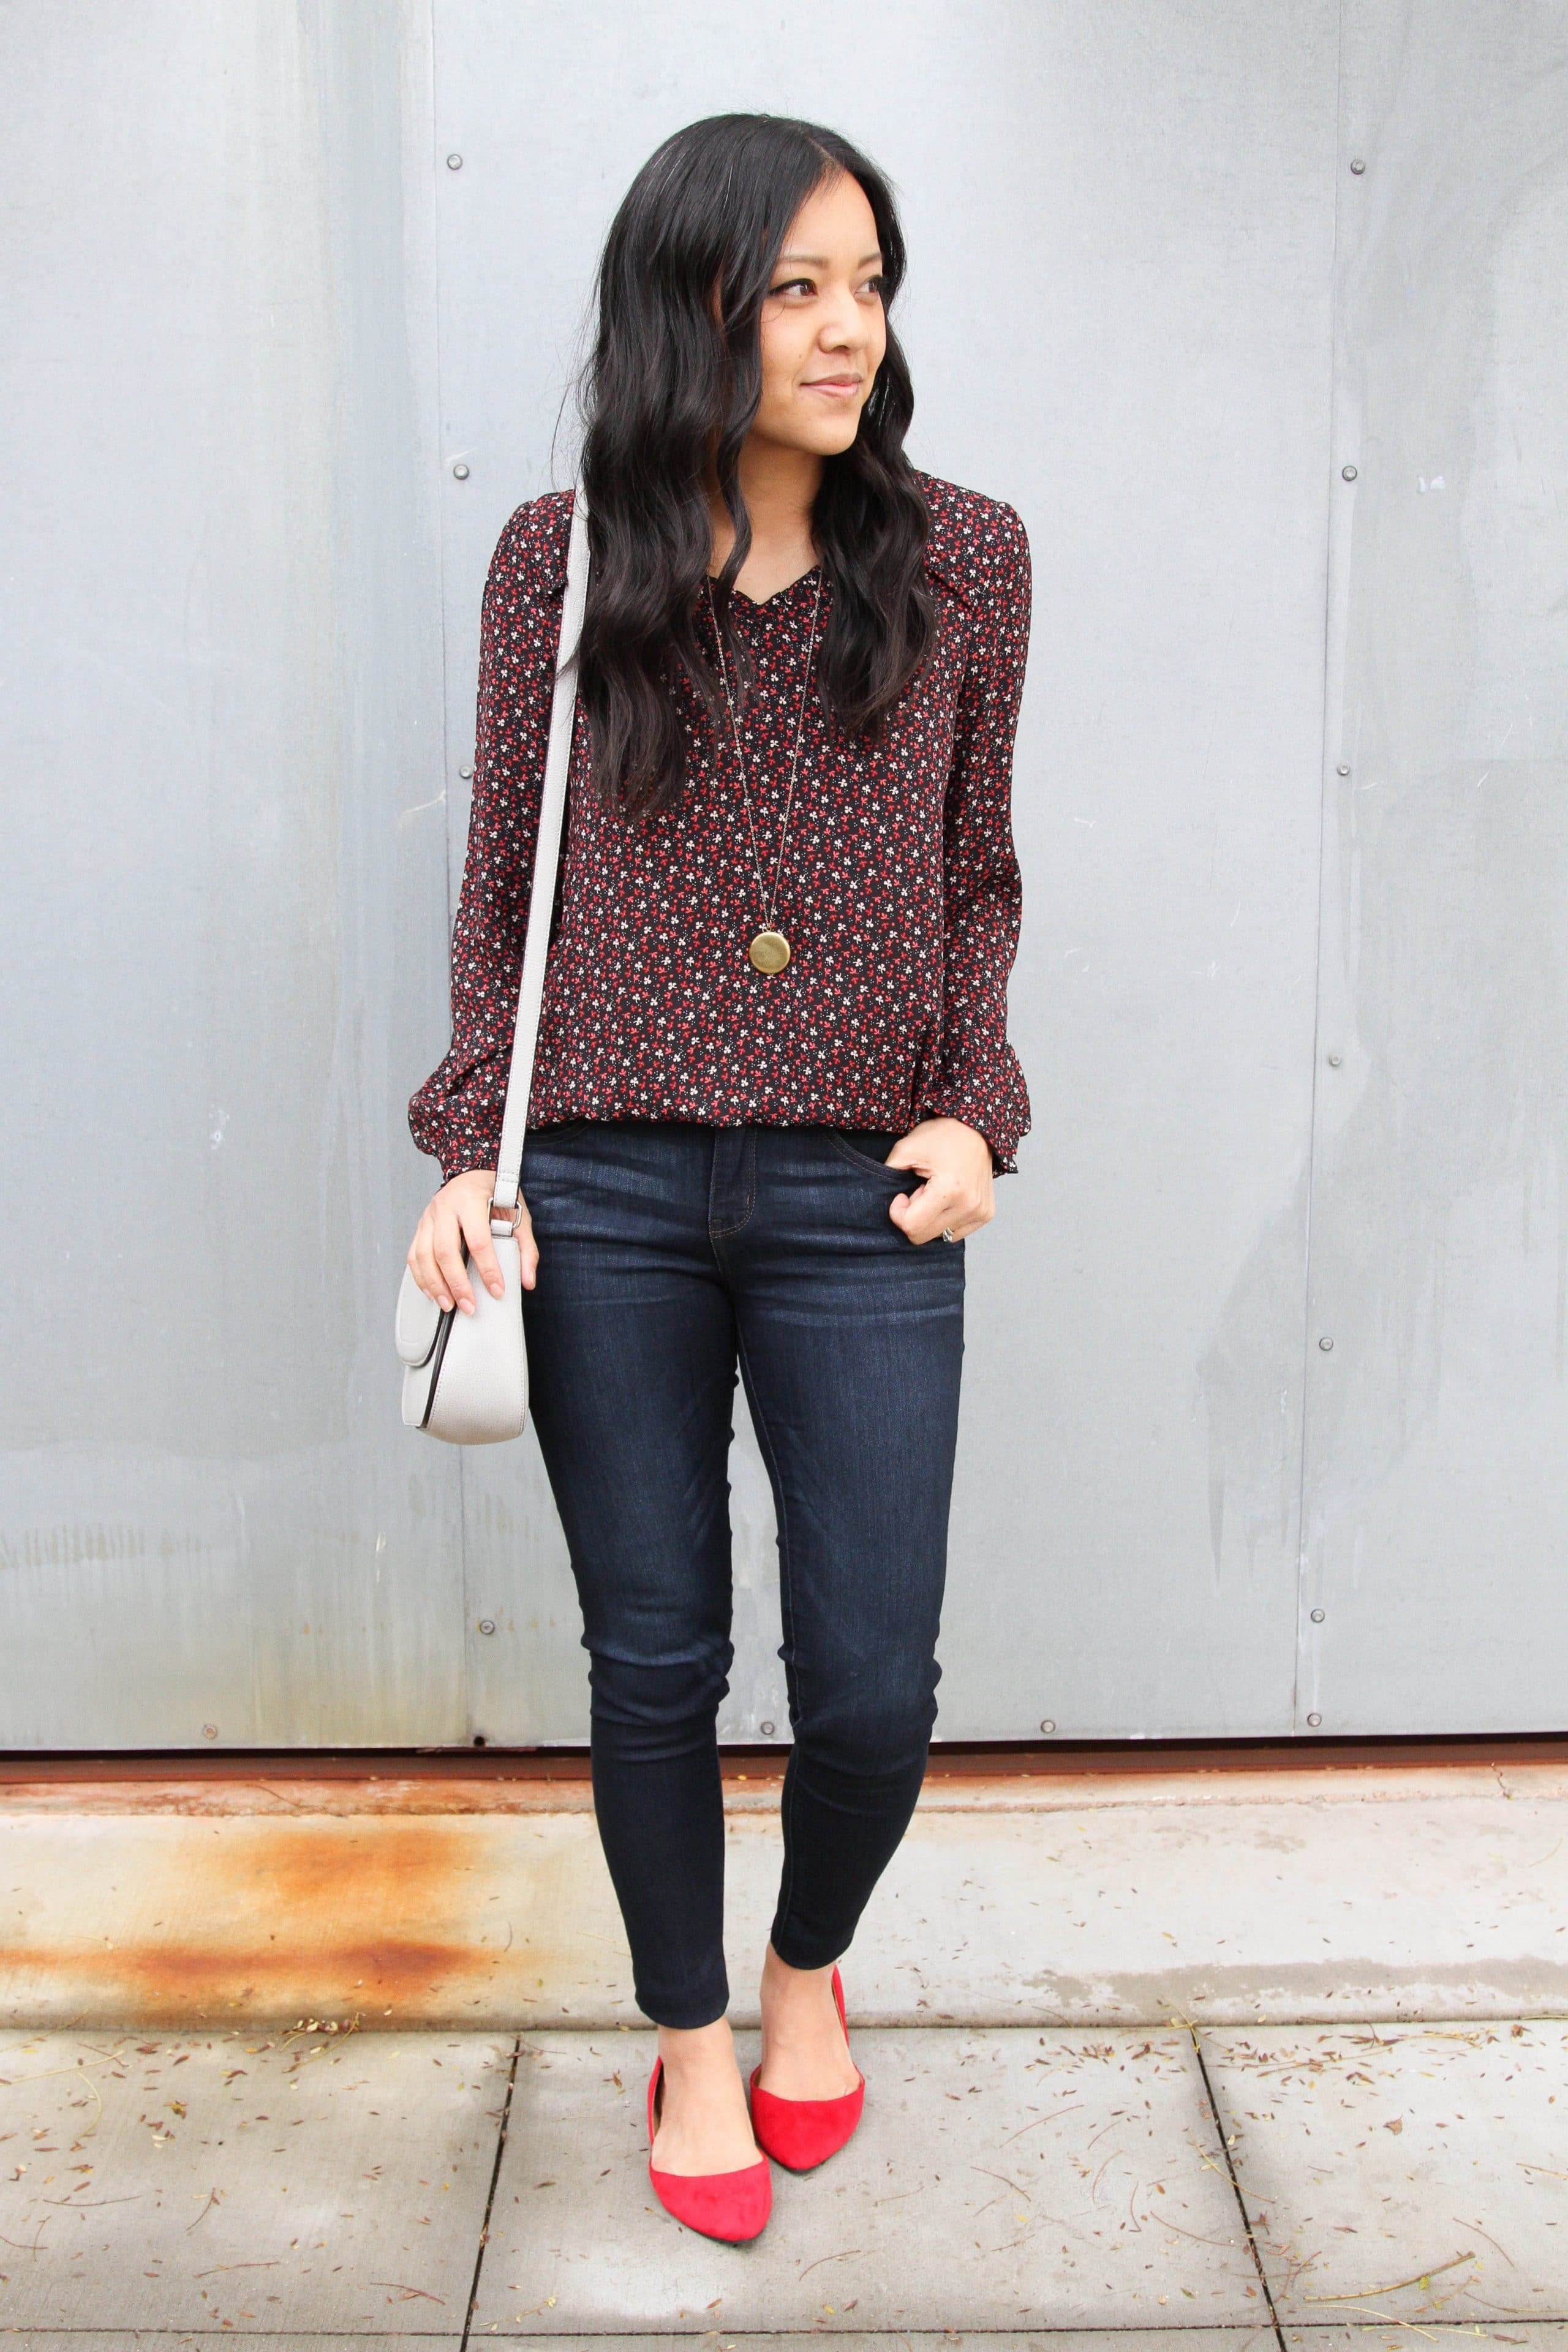 Floral Blouse + Skinnies + red flats + pendant + grey purse